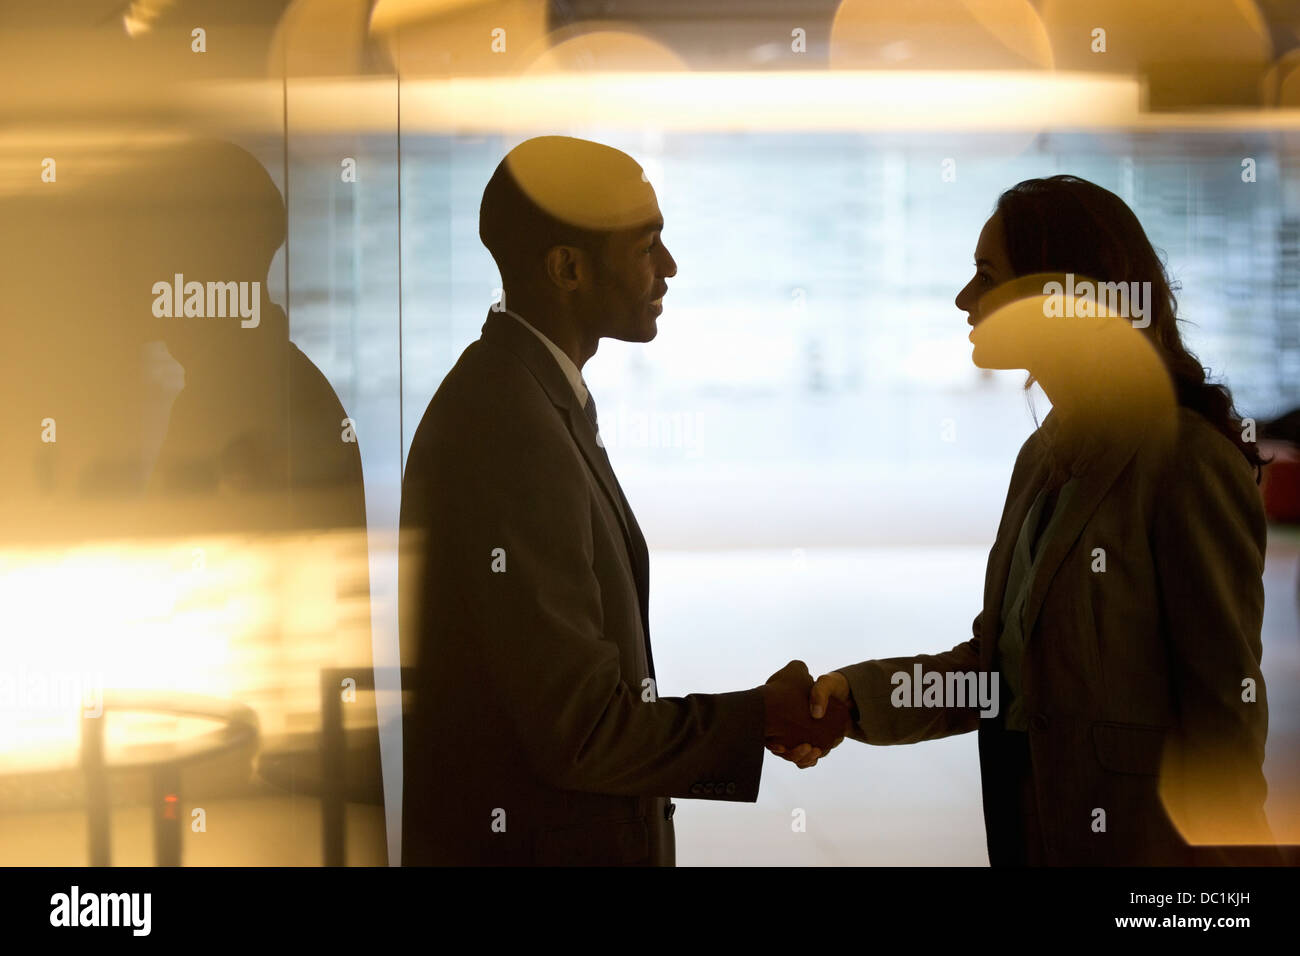 Businessman and businesswoman handshaking in lobby - Stock Image